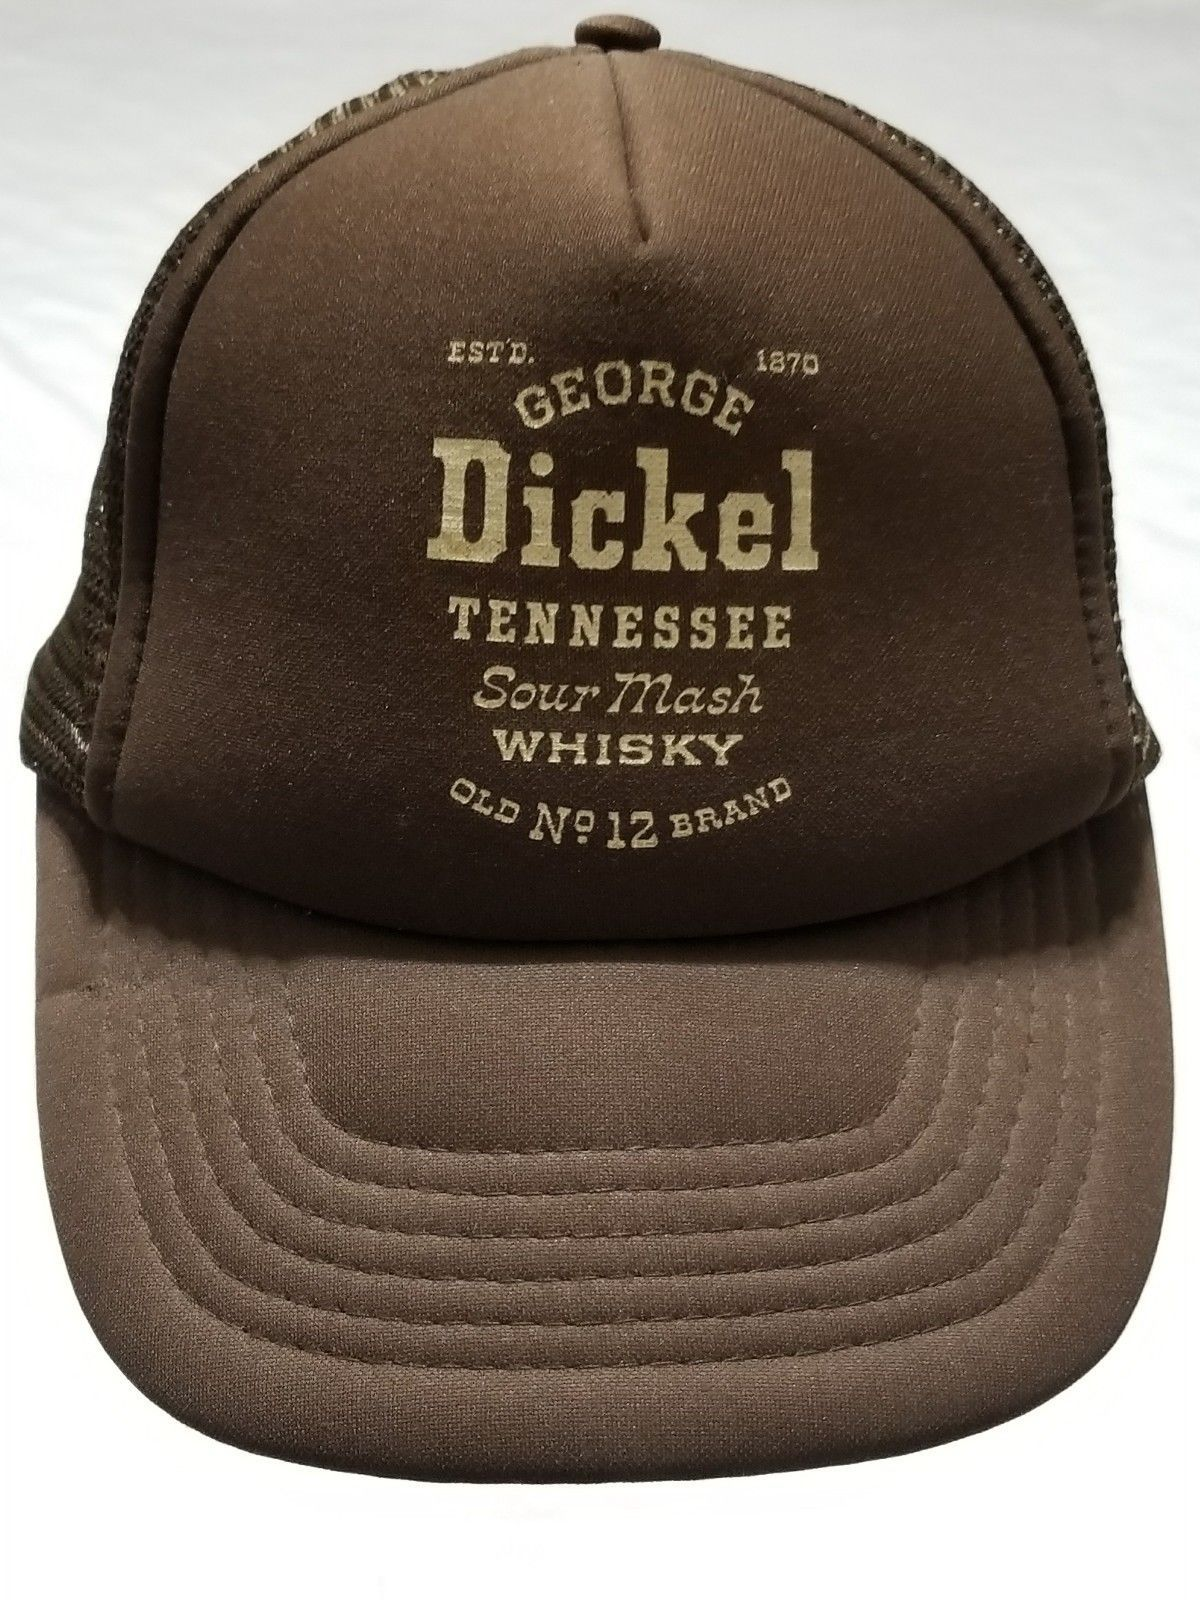 0d66aa6b3daba S l1600. S l1600. Previous. George Dickel Tennessee Sour Mash Whisky  Snapback Mesh Truckers Cap Hat Brown